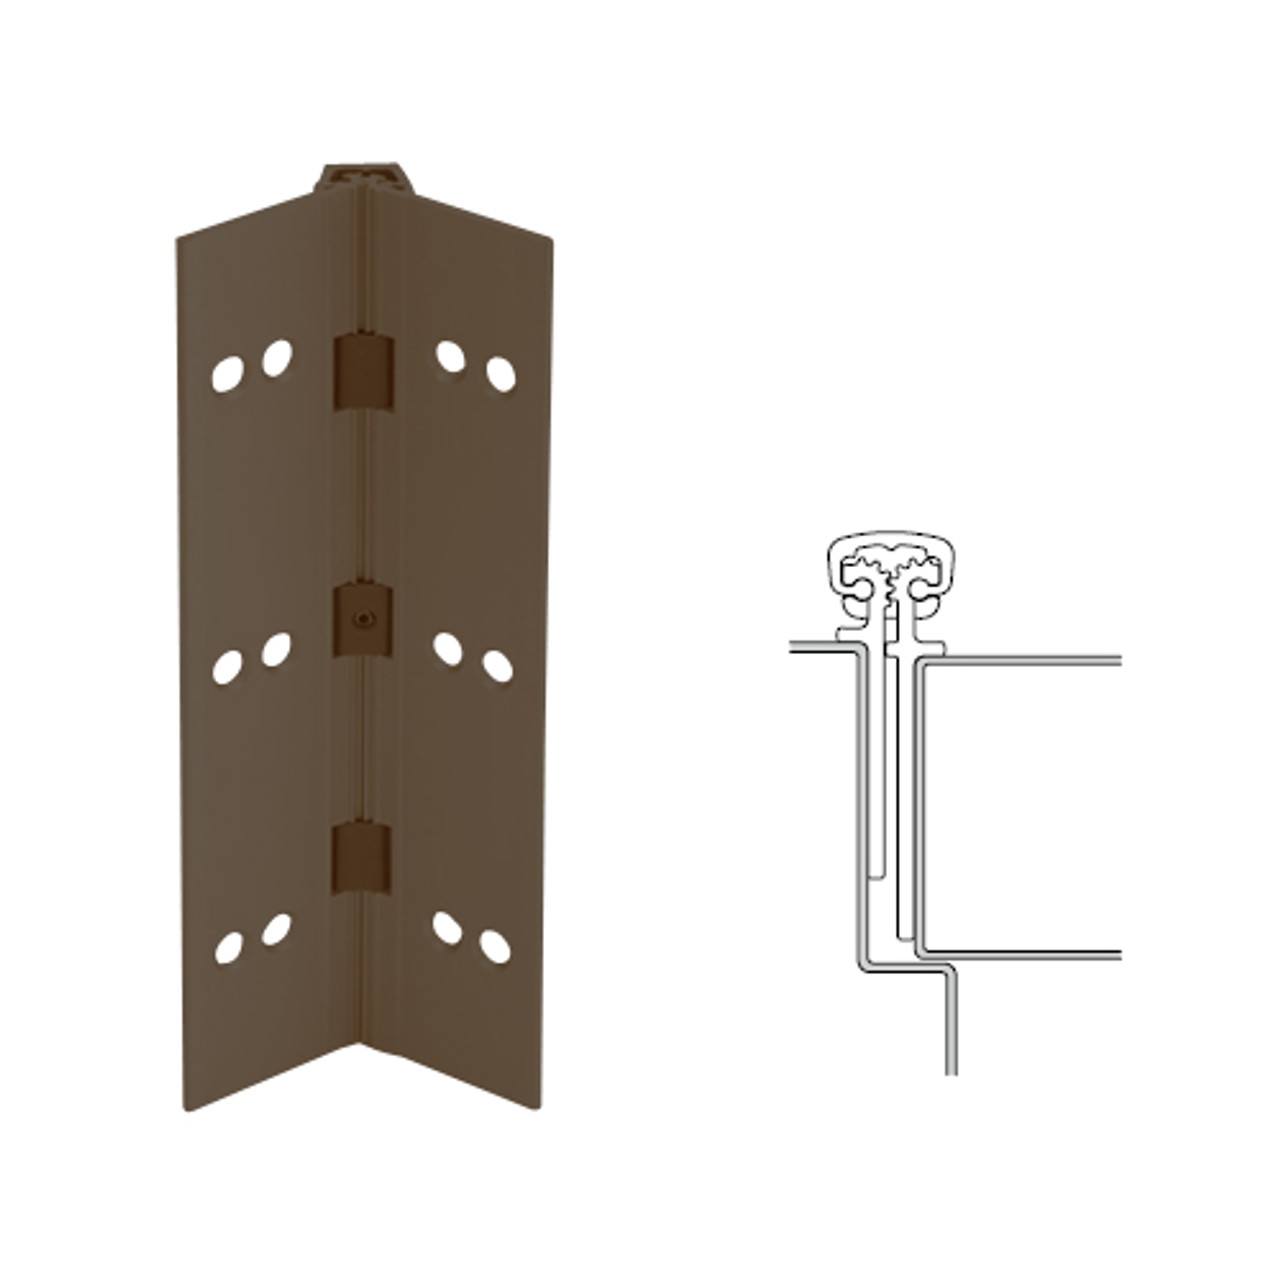 026XY-313AN-83-SECHM IVES Full Mortise Continuous Geared Hinges with Security Screws - Hex Pin Drive in Dark Bronze Anodized